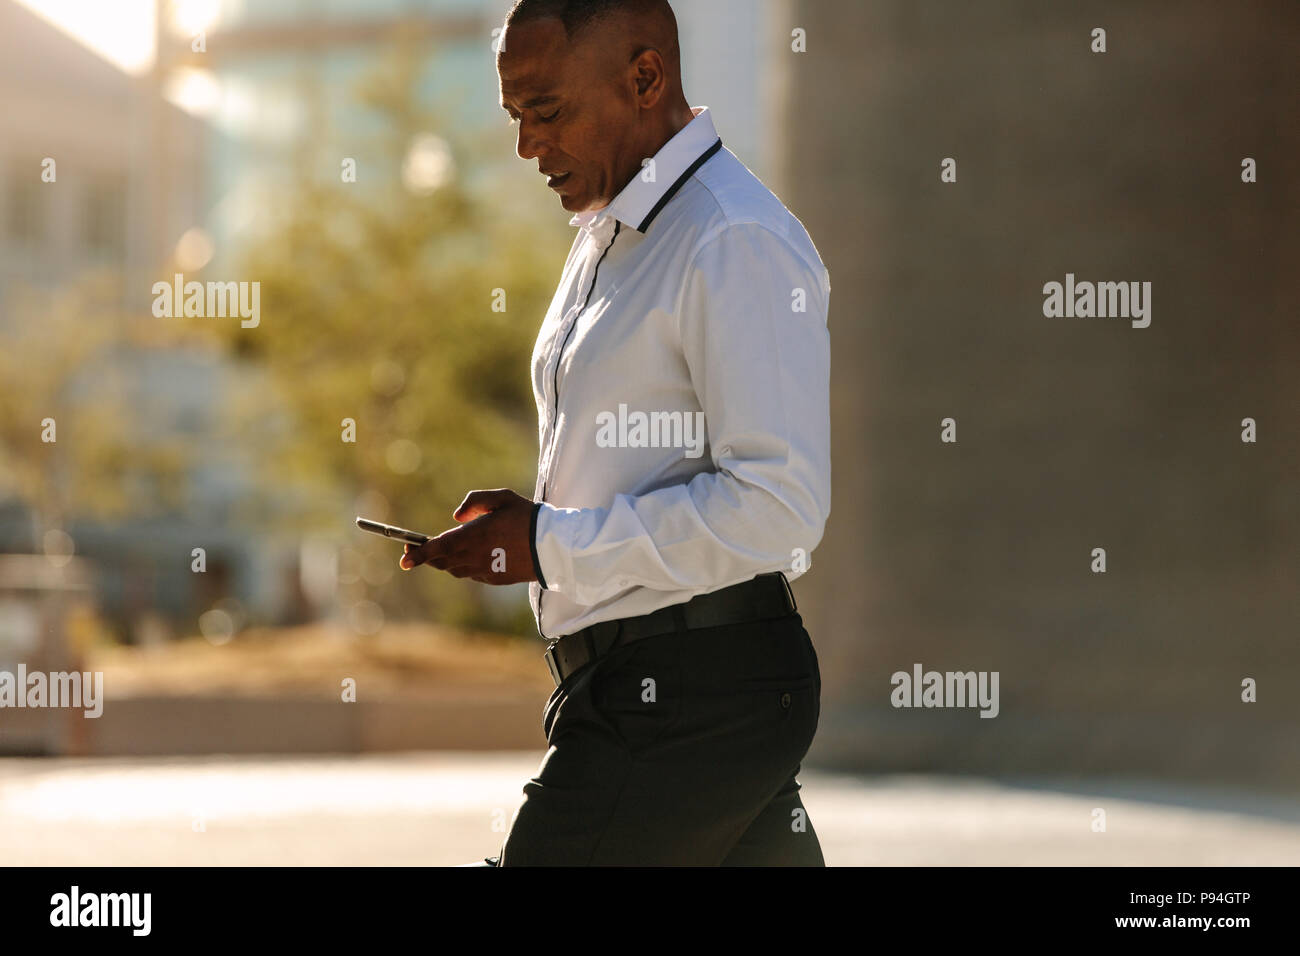 Man in formal clothes looking at his mobile phone while walking on street. Busy office going person walking on street and using his cellphone. - Stock Image